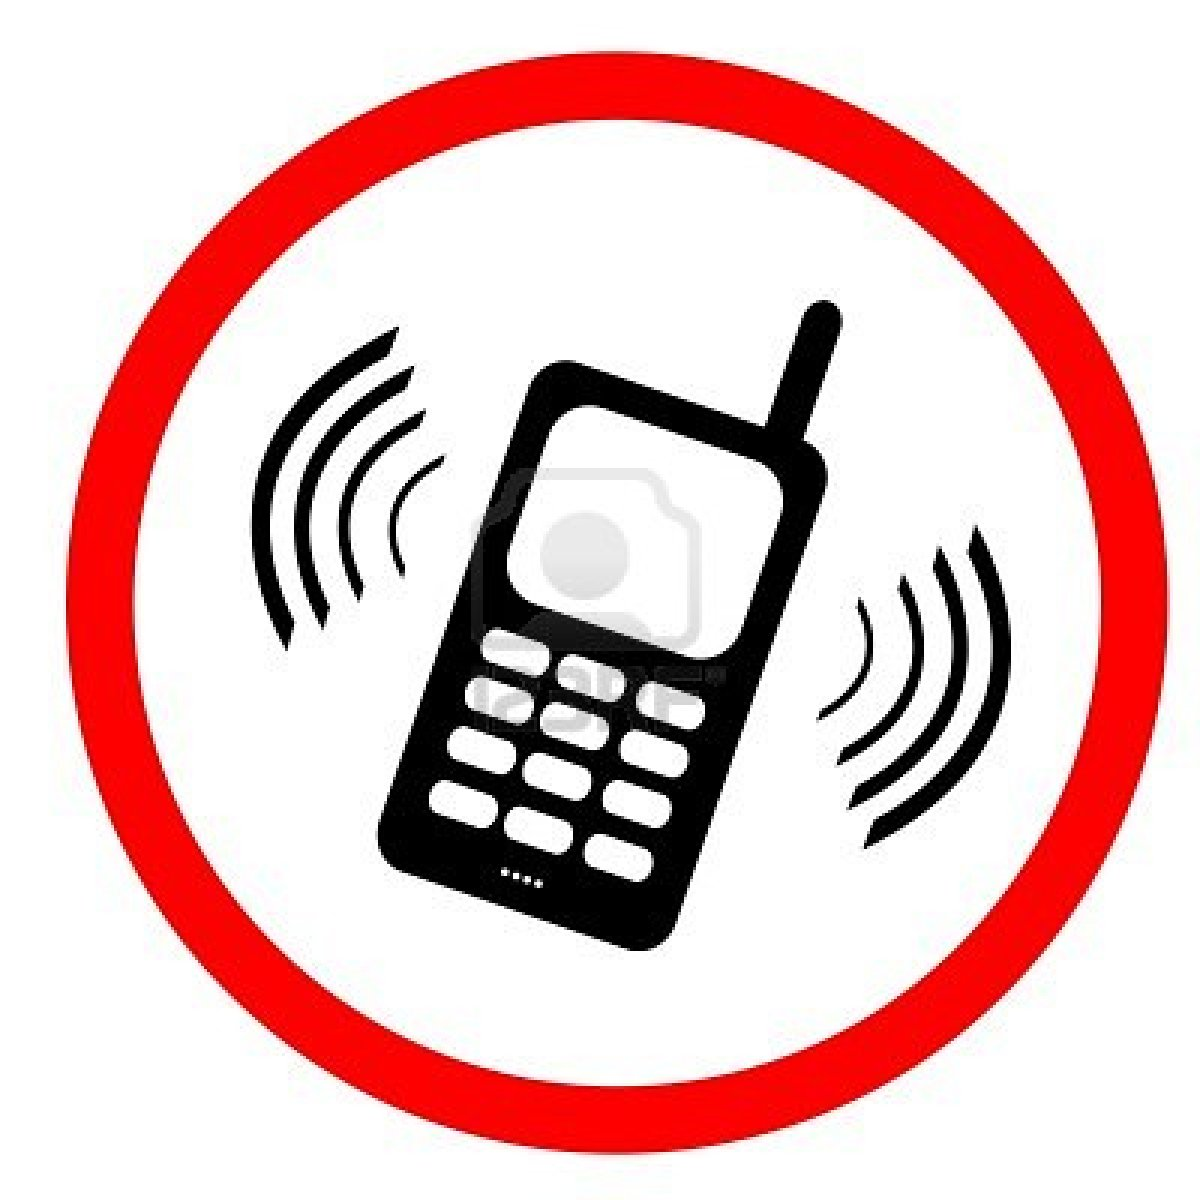 no cell phone clipart free - photo #35